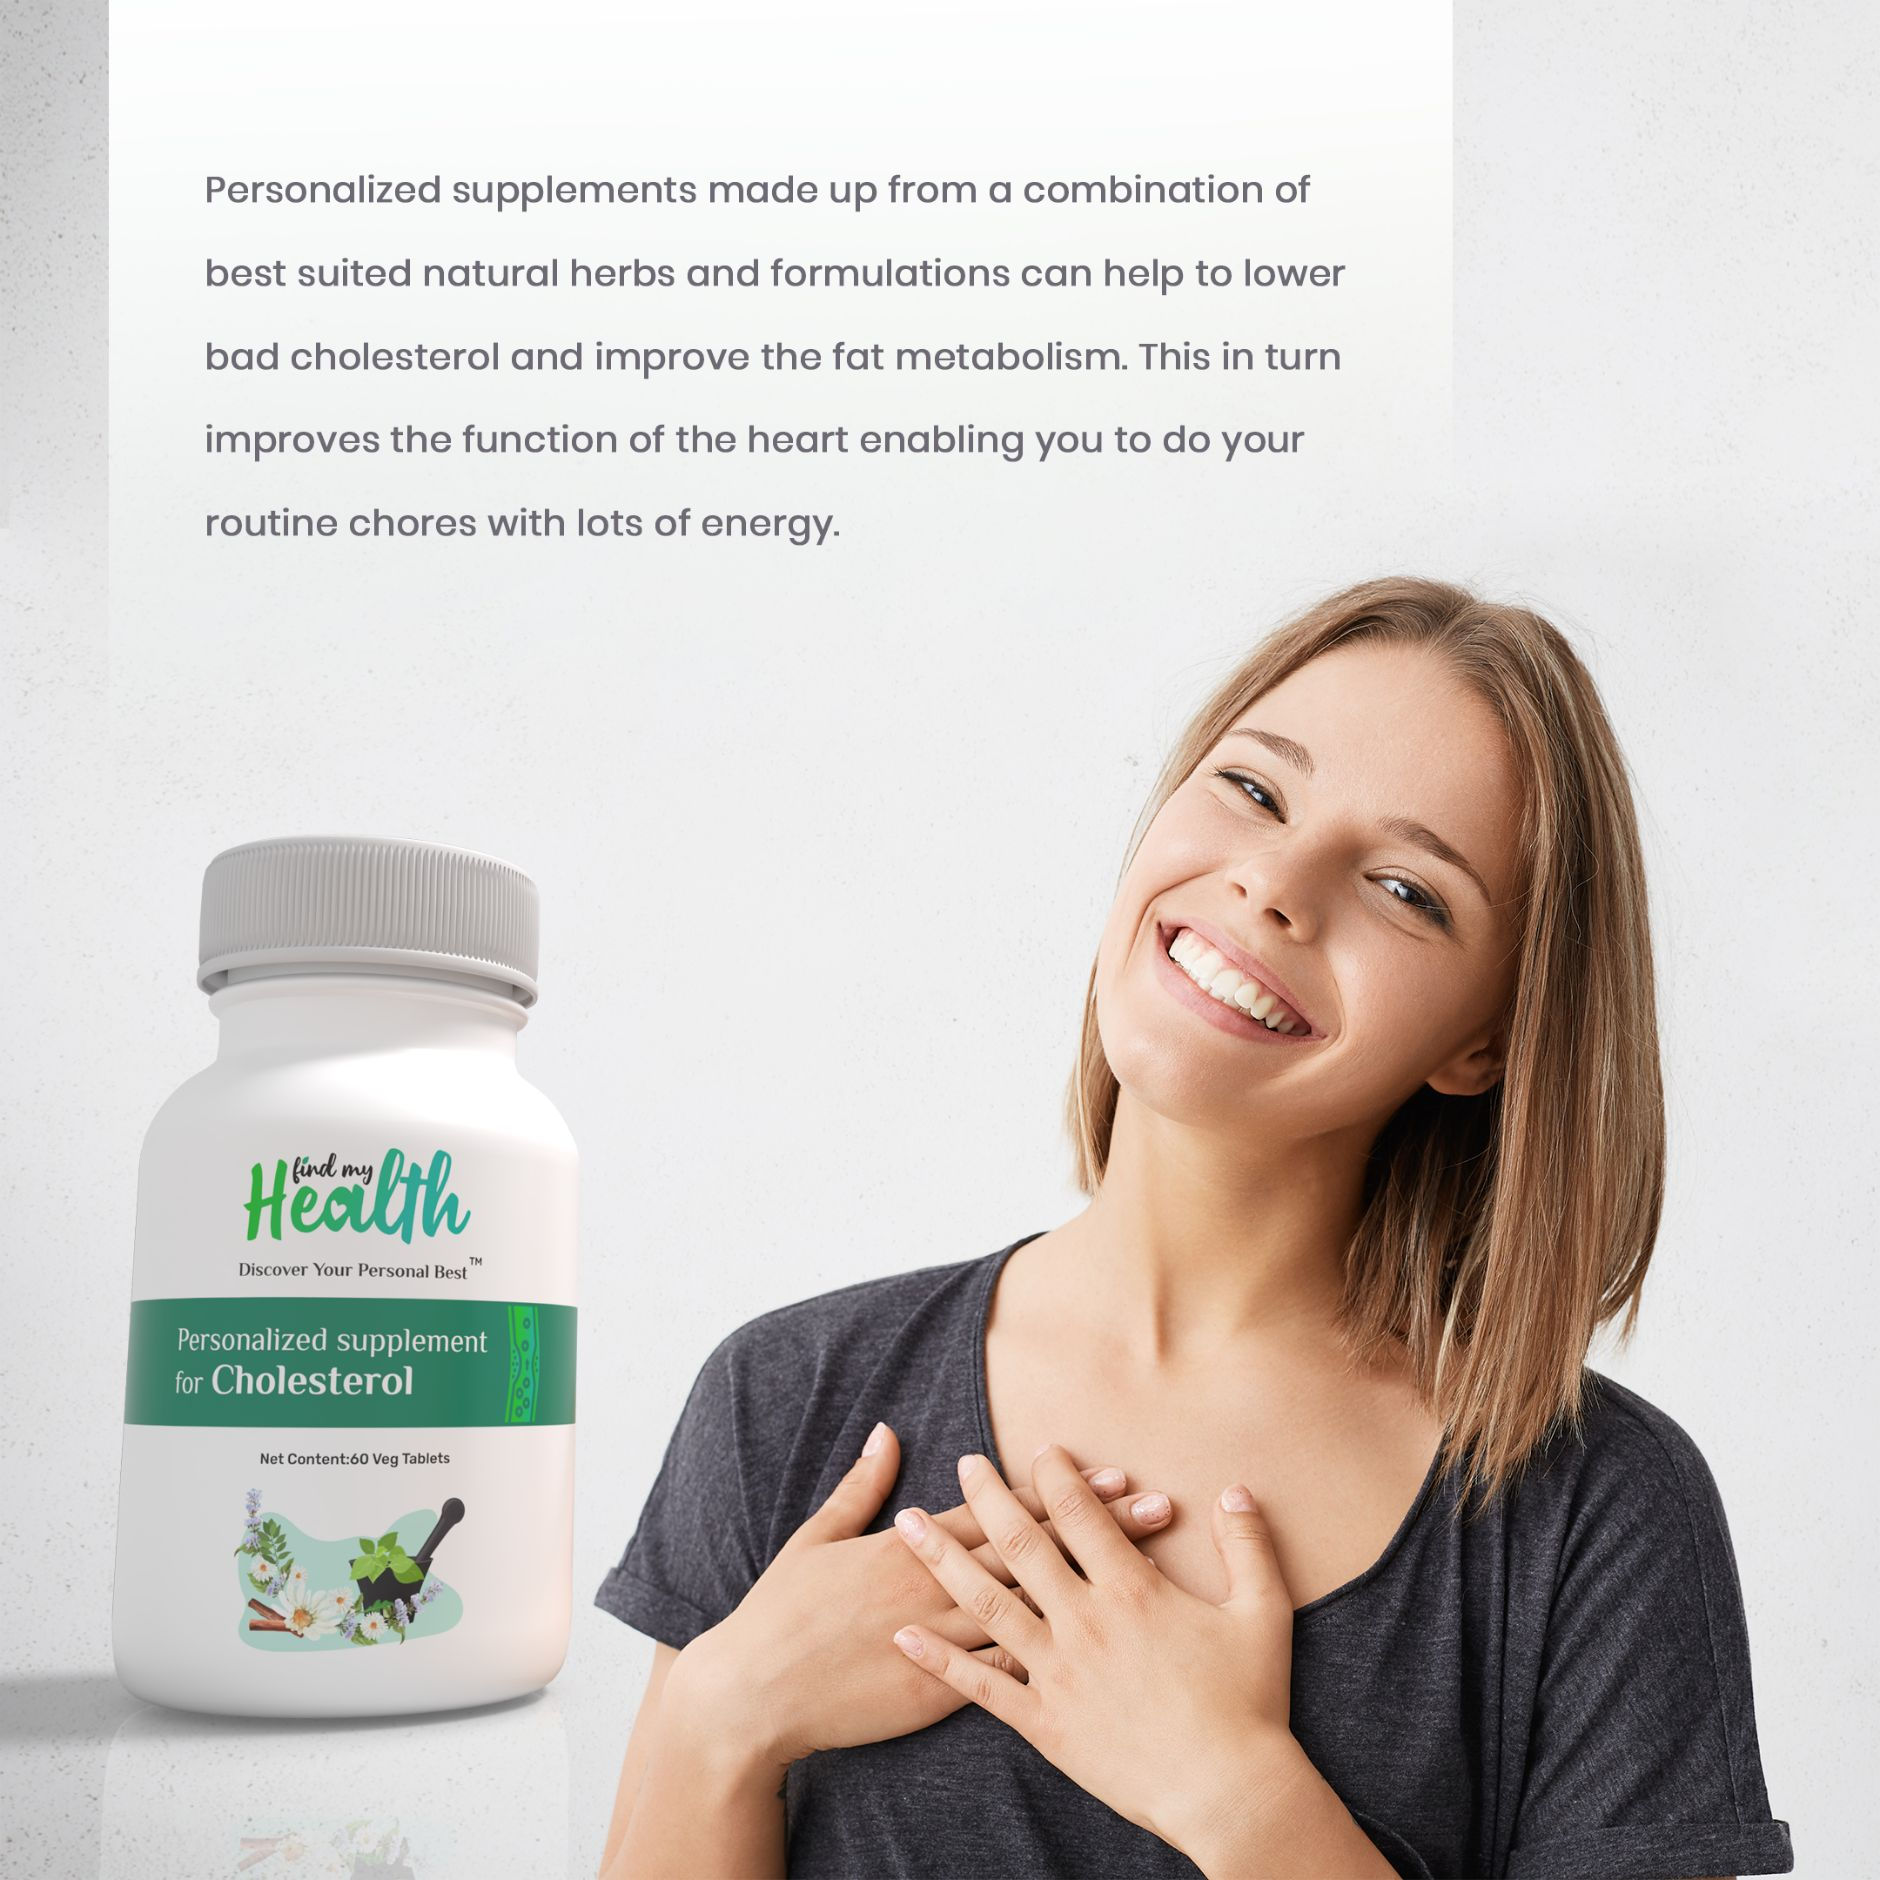 Personalized supplement for Cholesterol